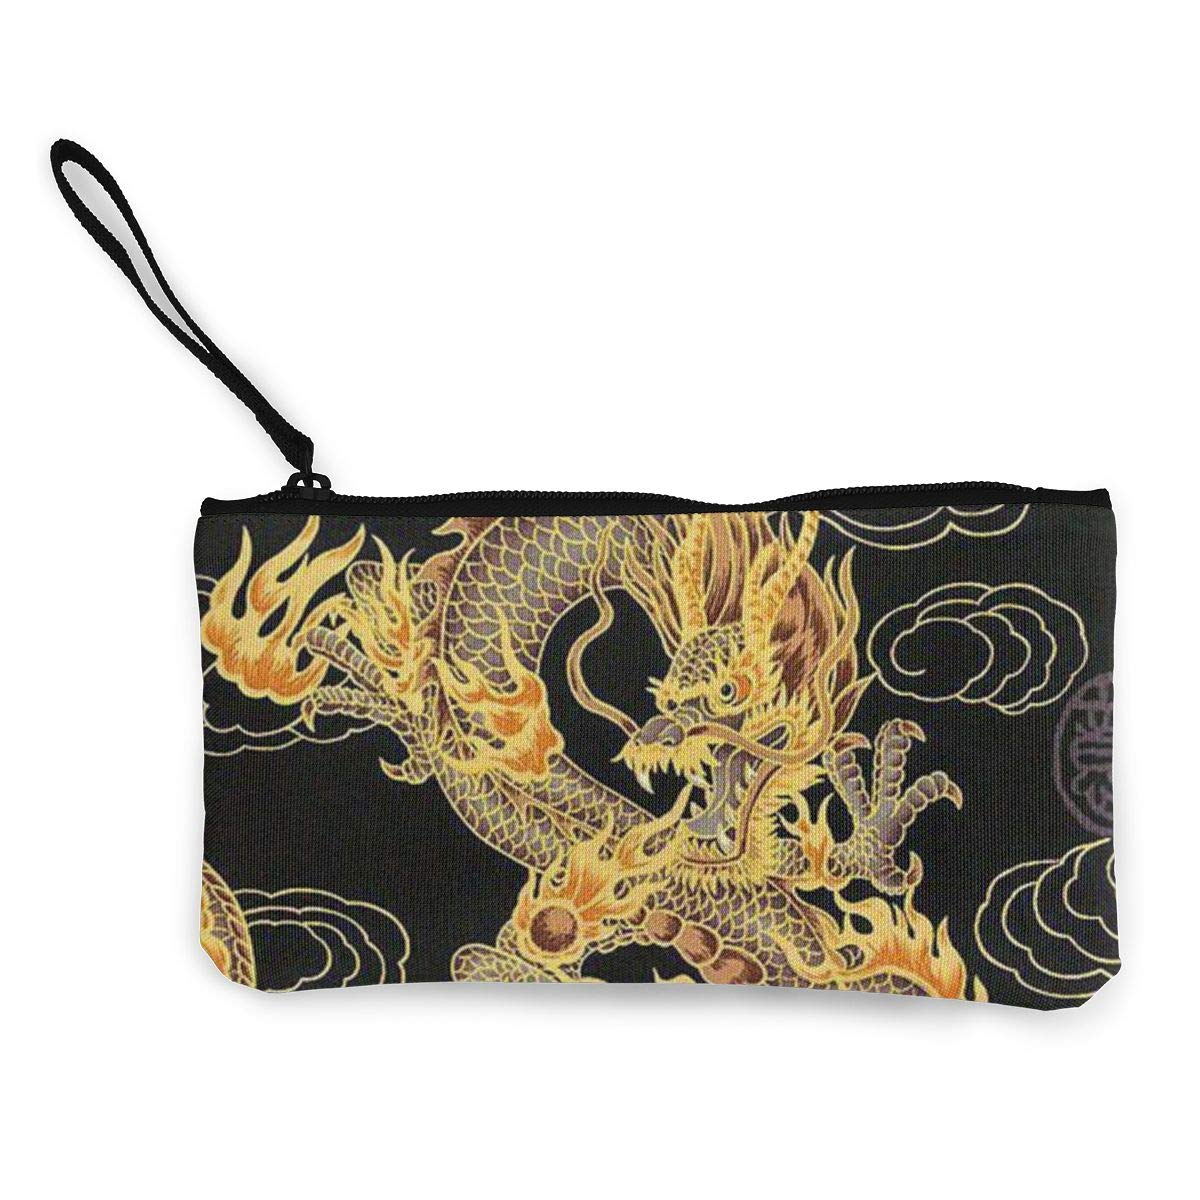 Canvas Cash Coin Purse,Yellow Dragon Black Background Print Make Up Bag Zipper Small Purse Wallets